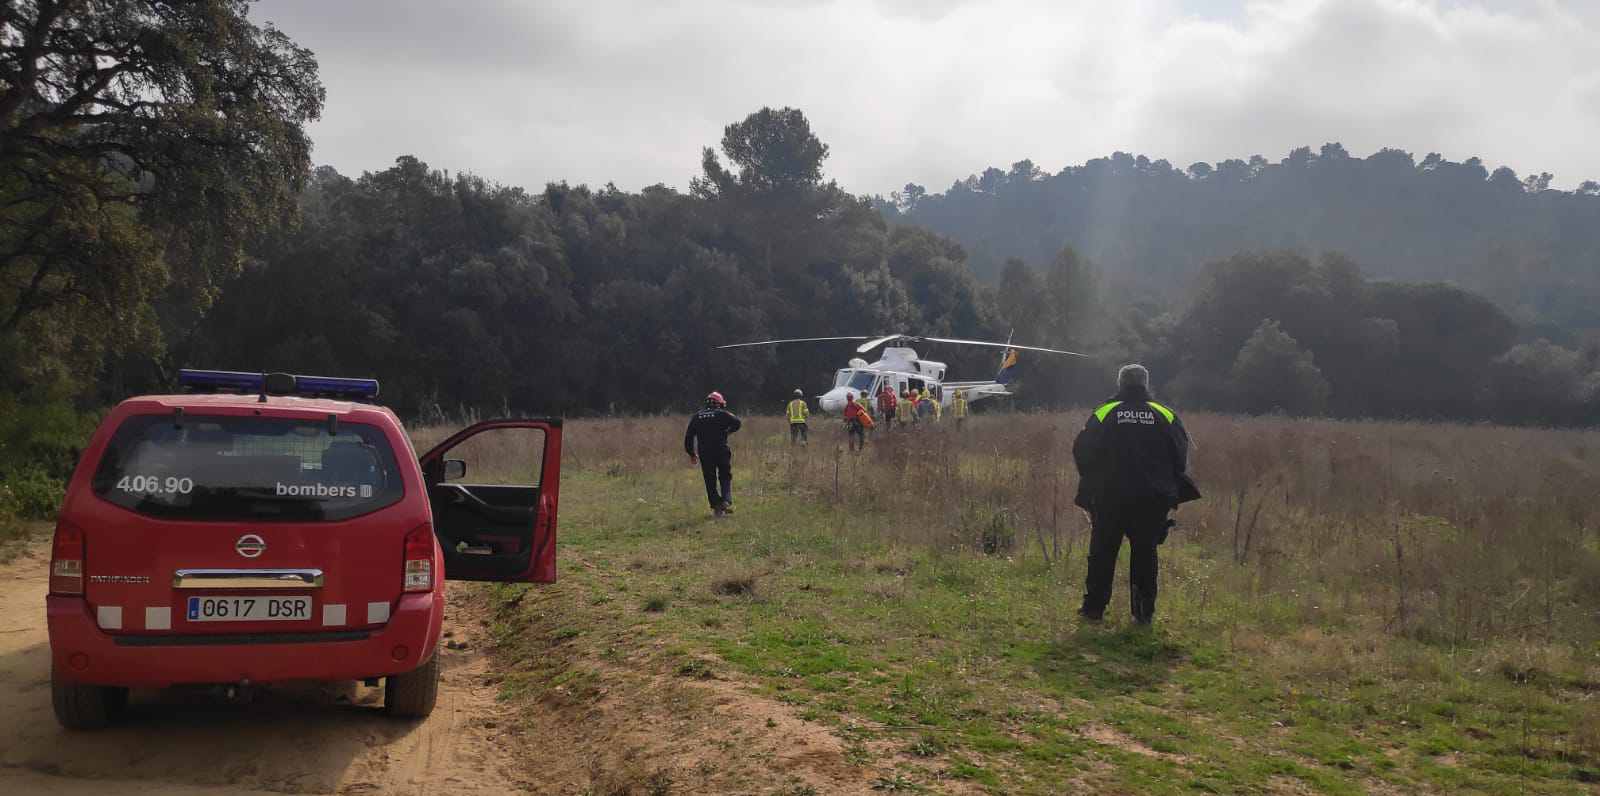 La Policia Local facilita el rescat en helicòpter d'un ciclista accidentat